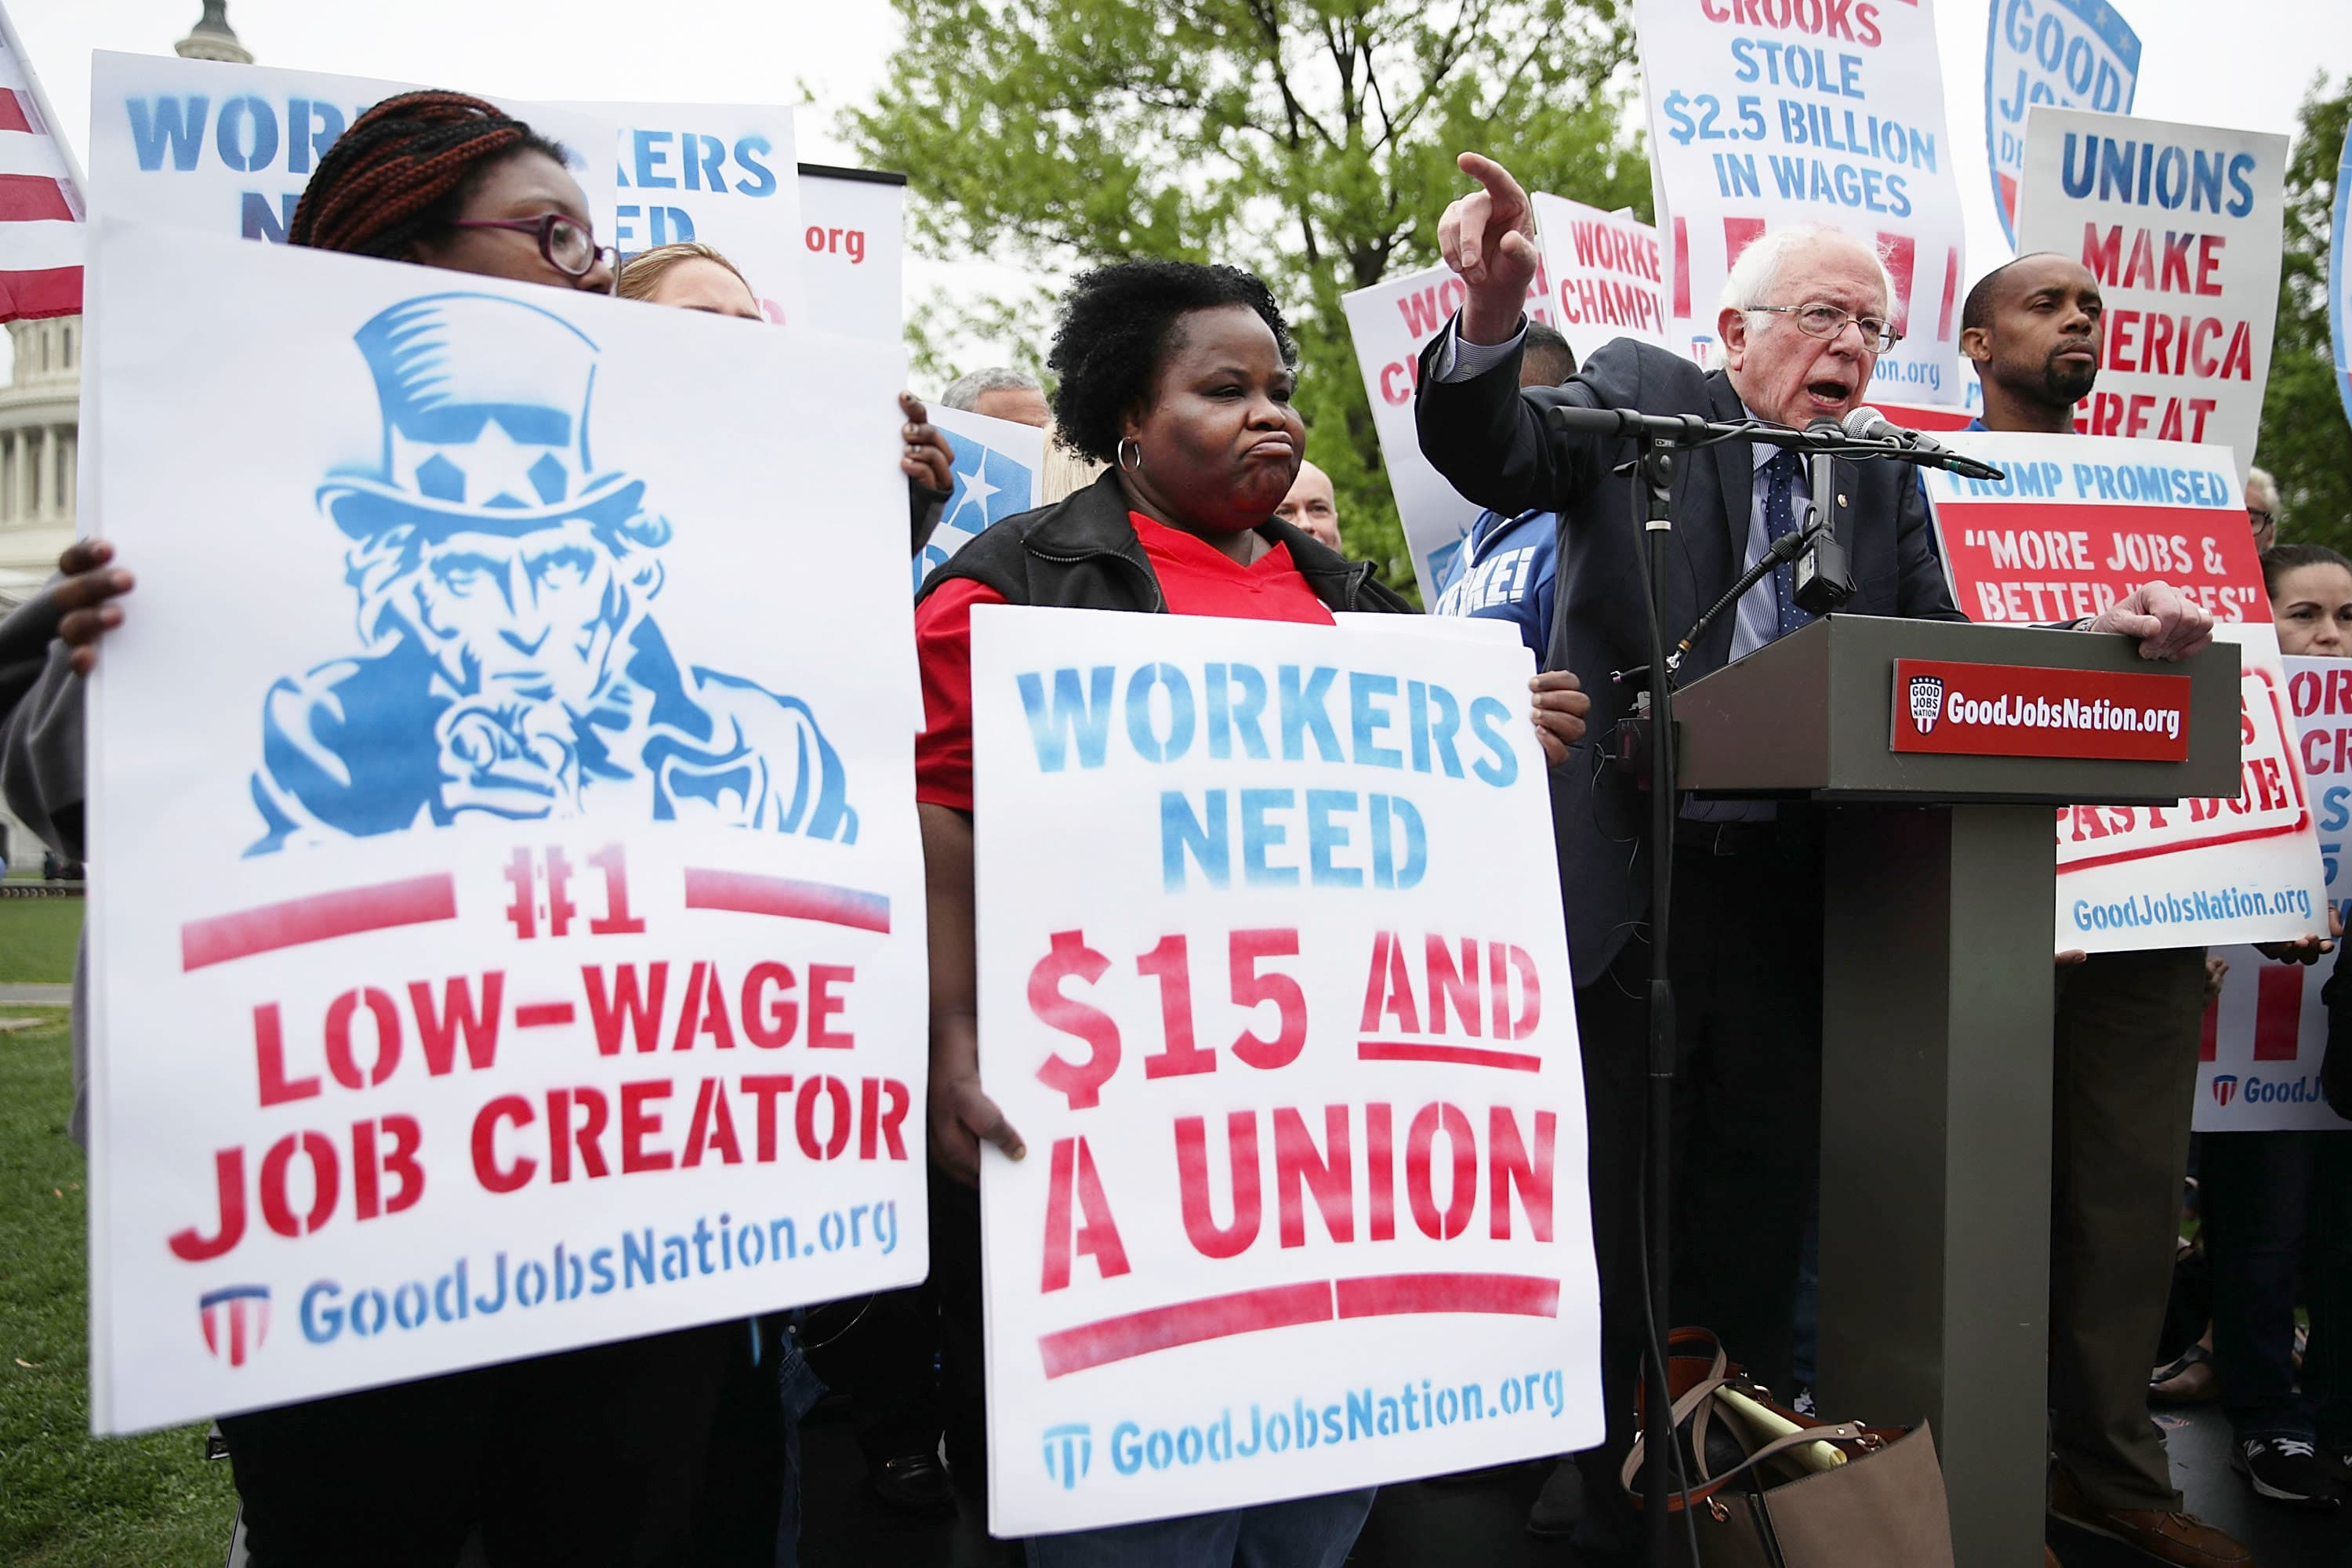 2020 Democrats embrace a $15 US minimum wage as they target Trump's economy